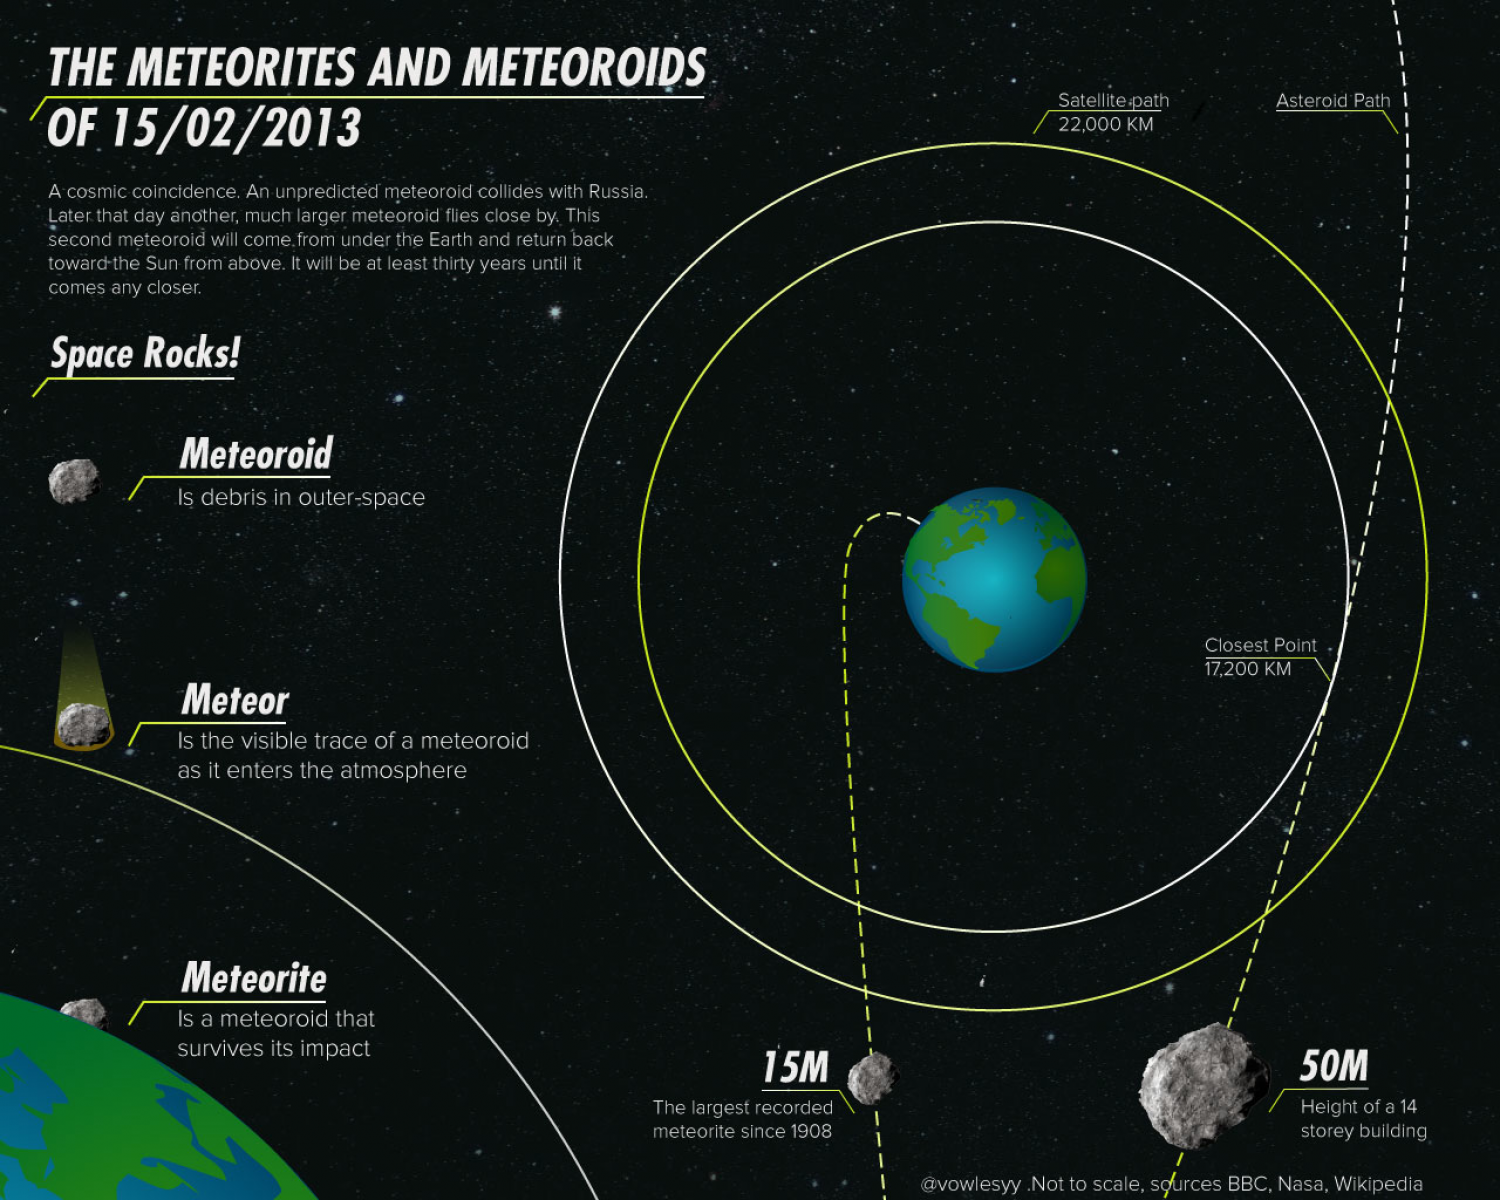 The Meteorites and Meteoroids of 15/02/2013 Infographic